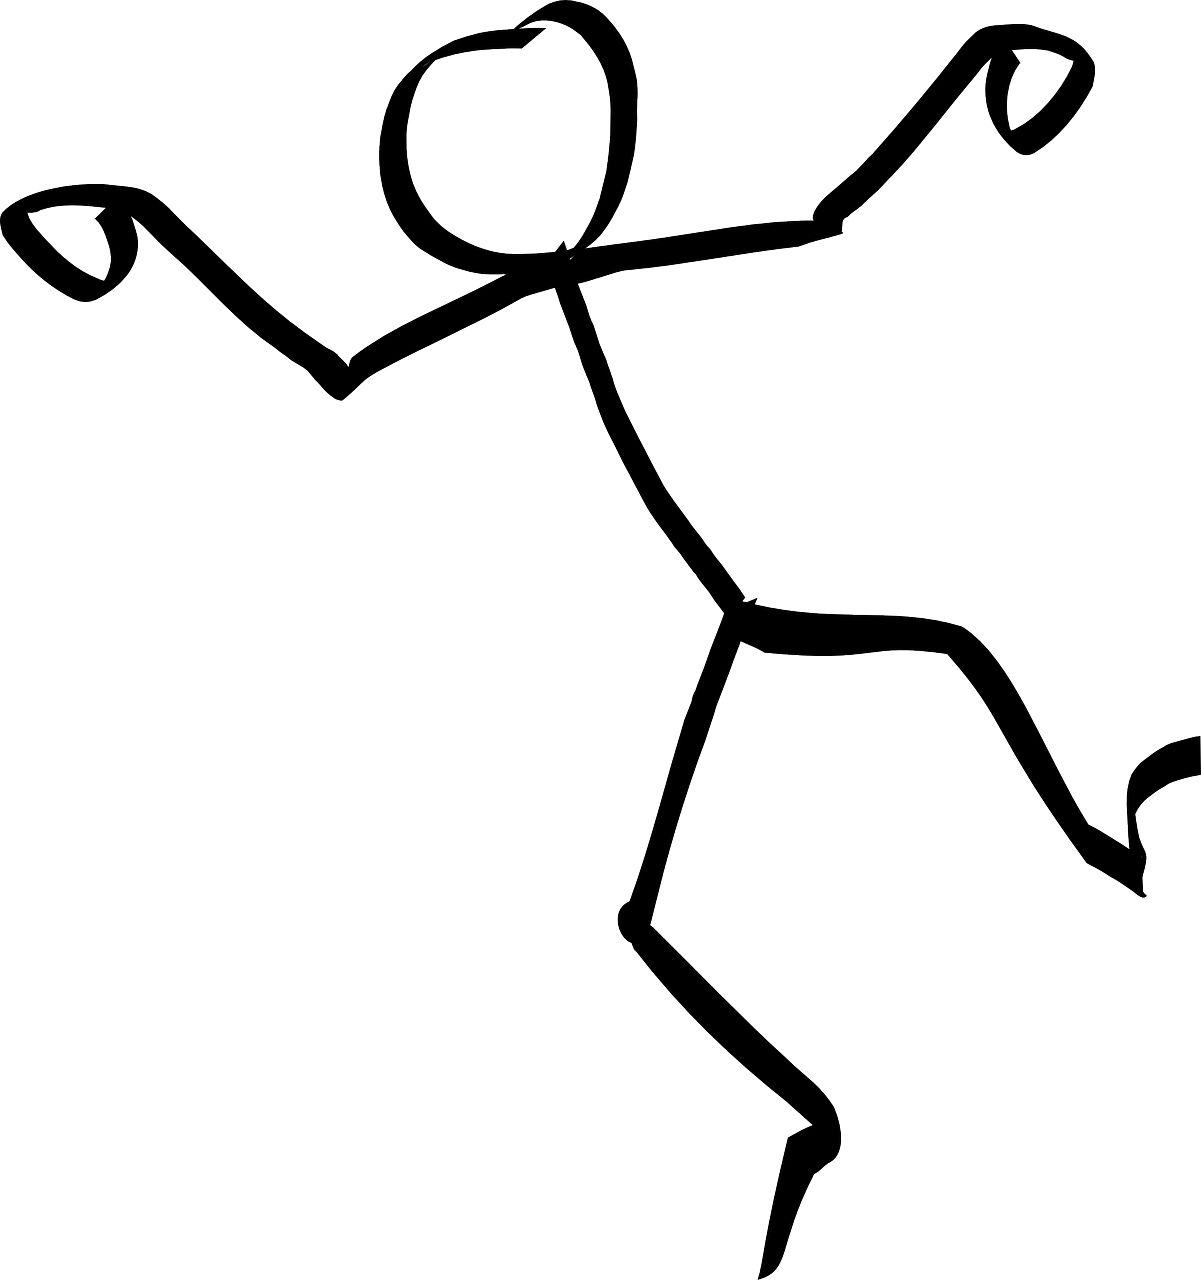 Dancing Stick Figure - PNG HD Of Stick Figures